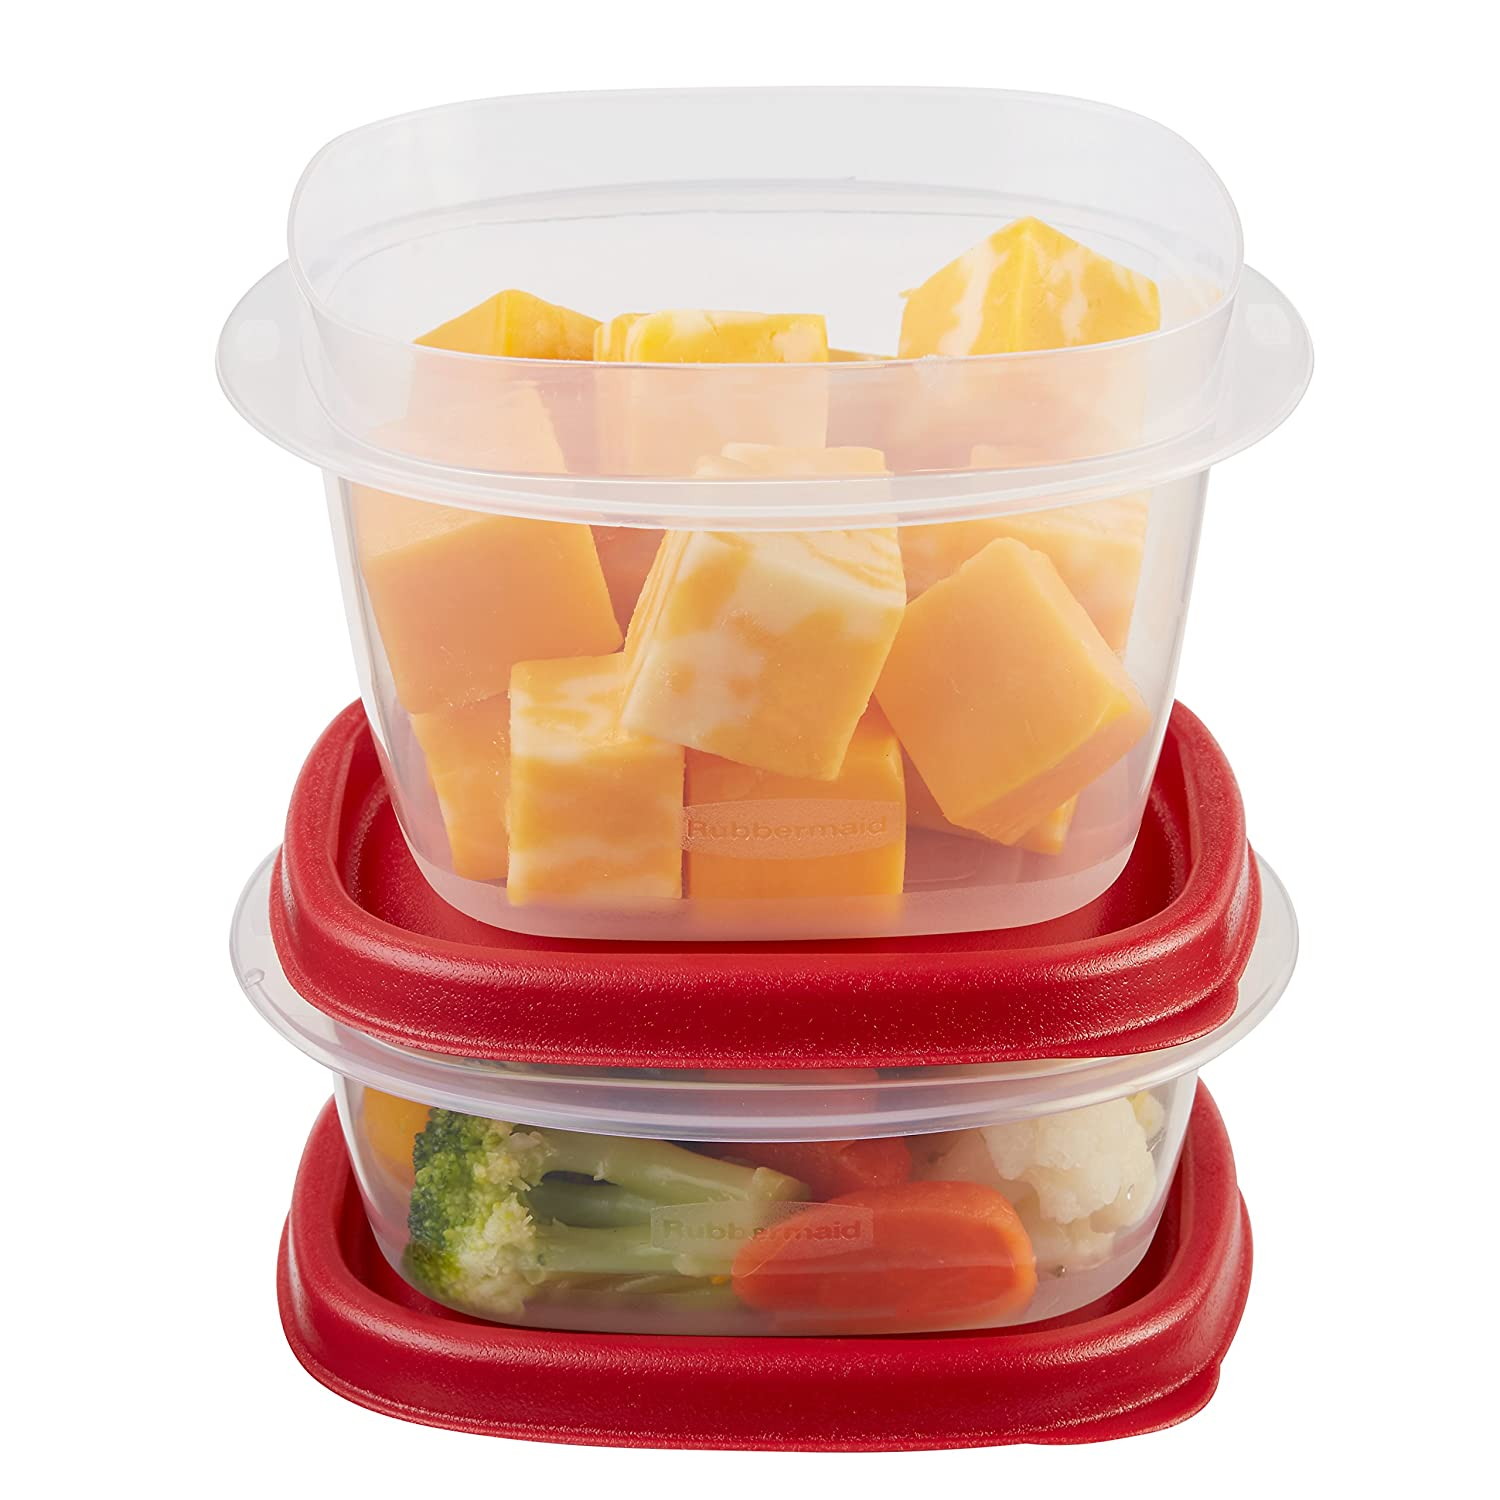 Rubbermaid Easy Find Lids Food Storage Container, 6-Piece Set, Red